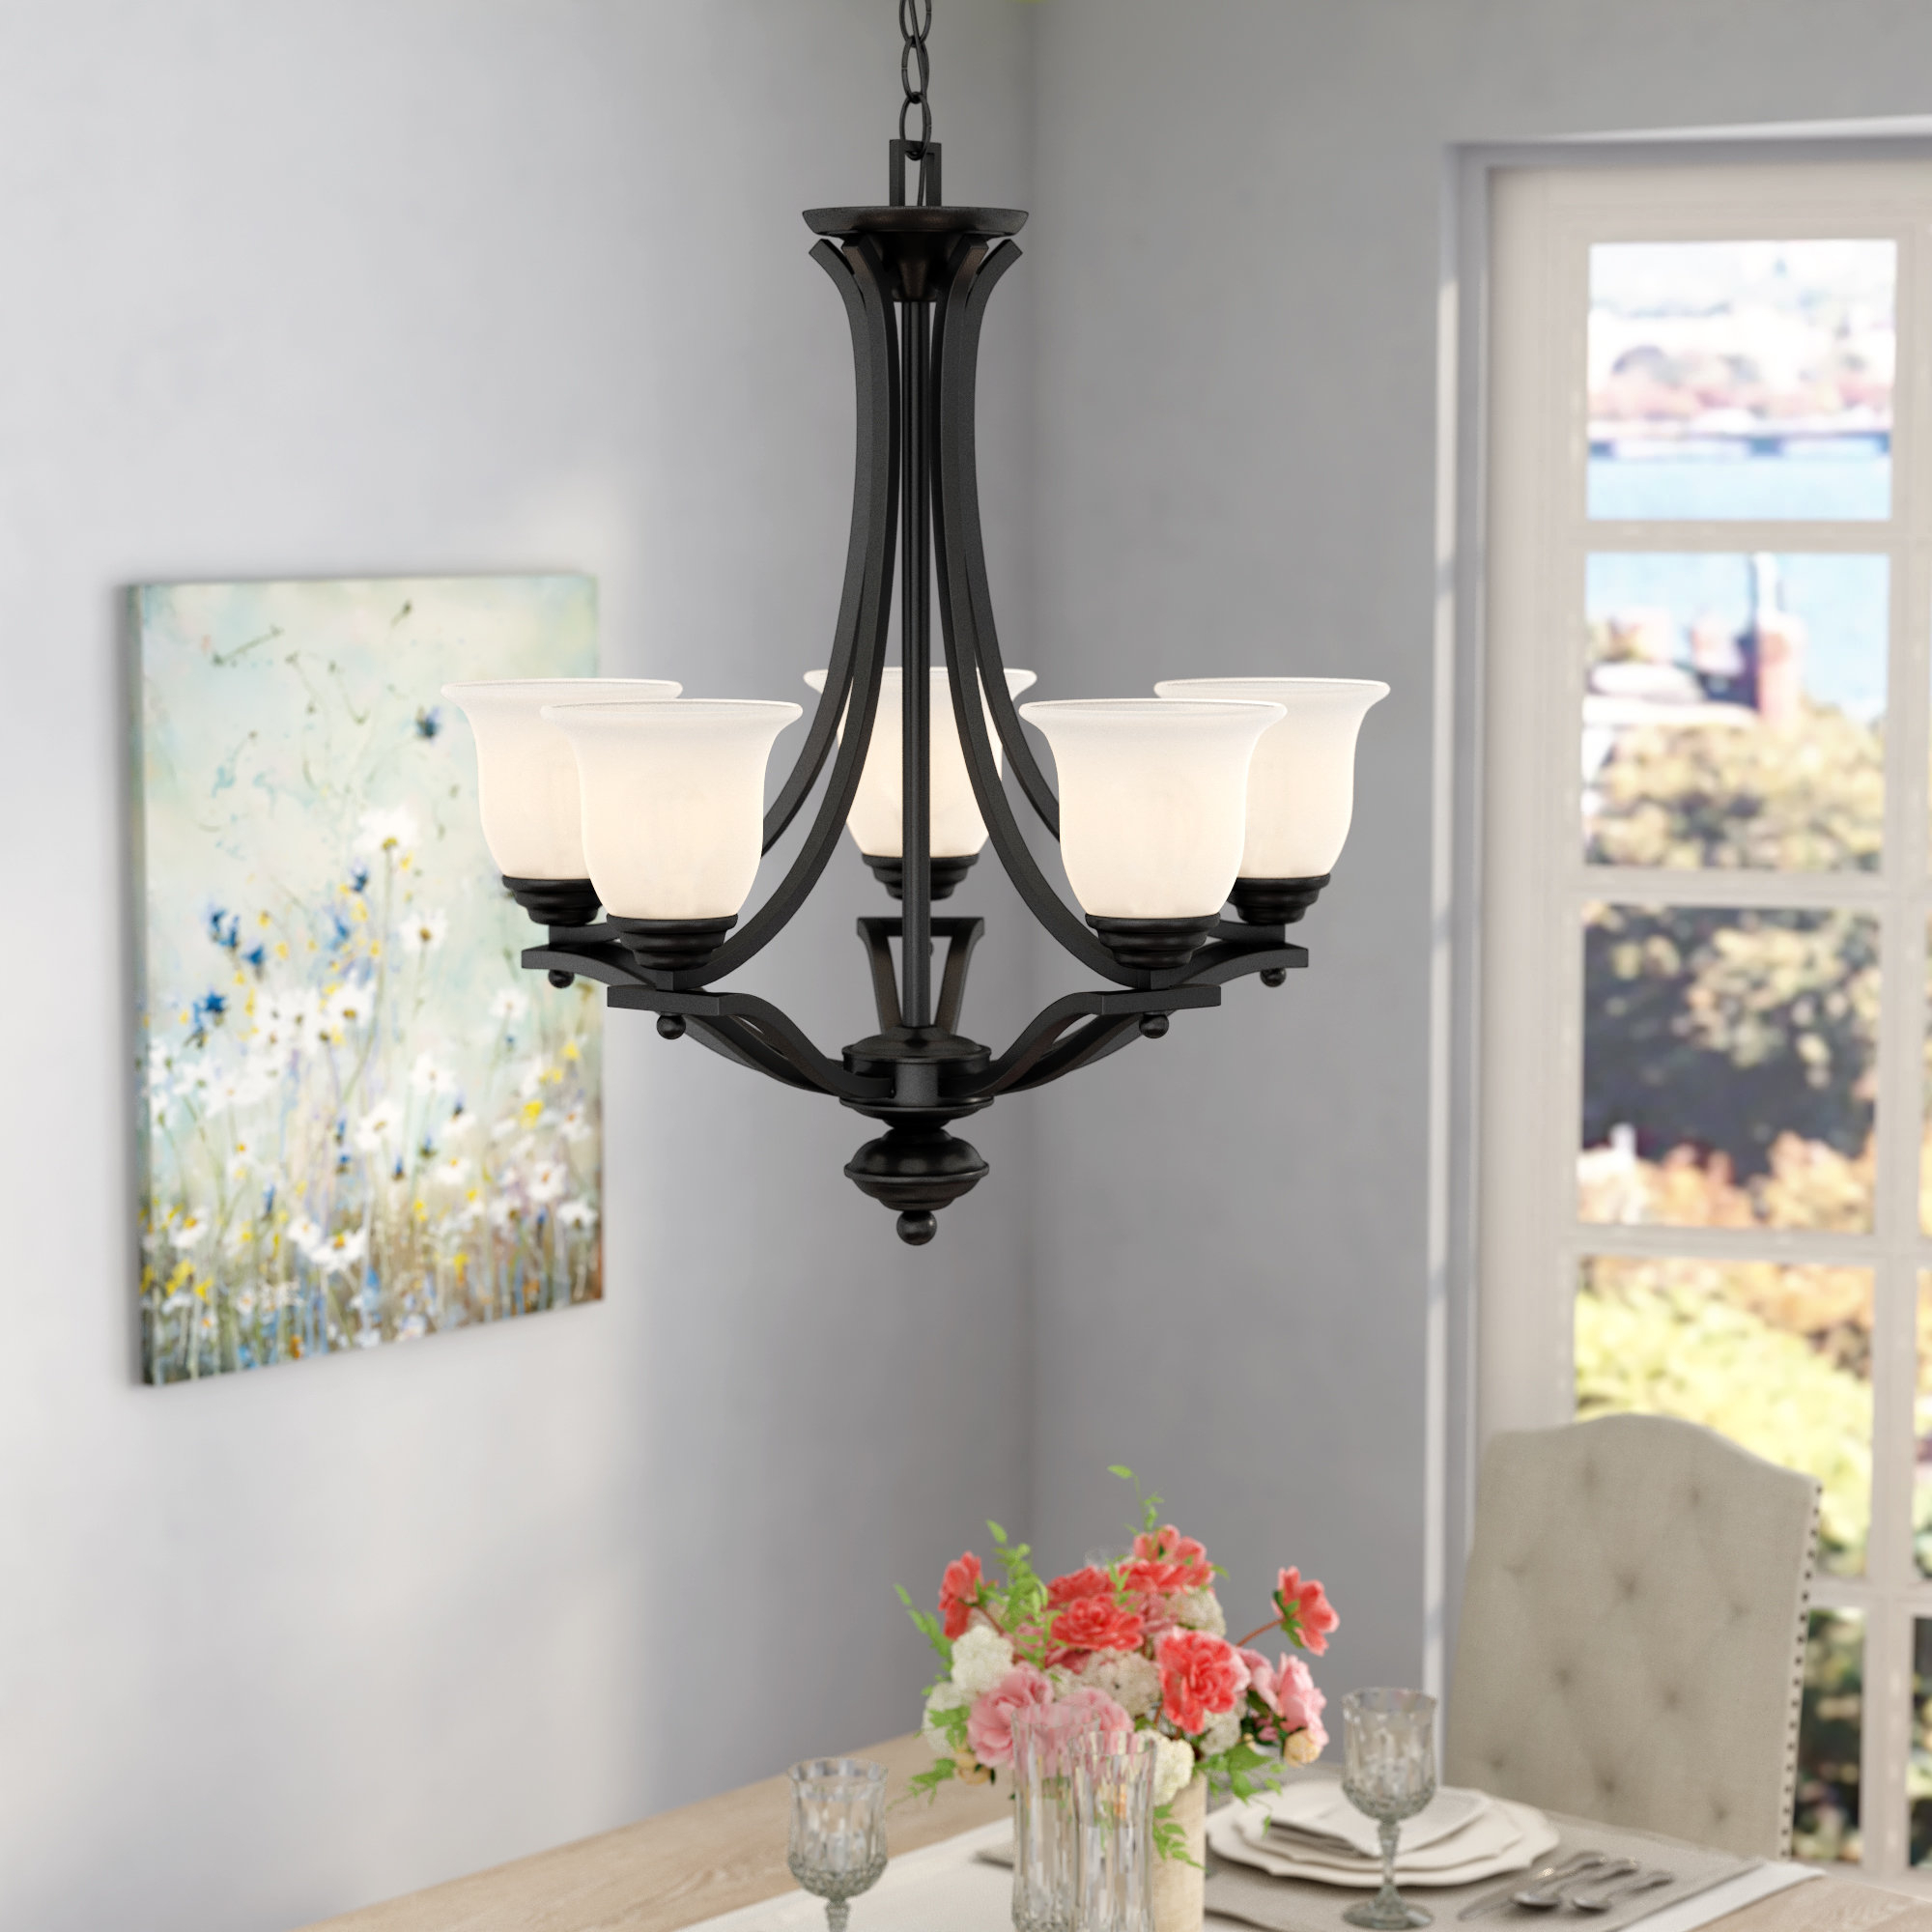 Newent 5-Light Shaded Chandeliers with regard to Newest Weyer 5-Light Shaded Chandelier